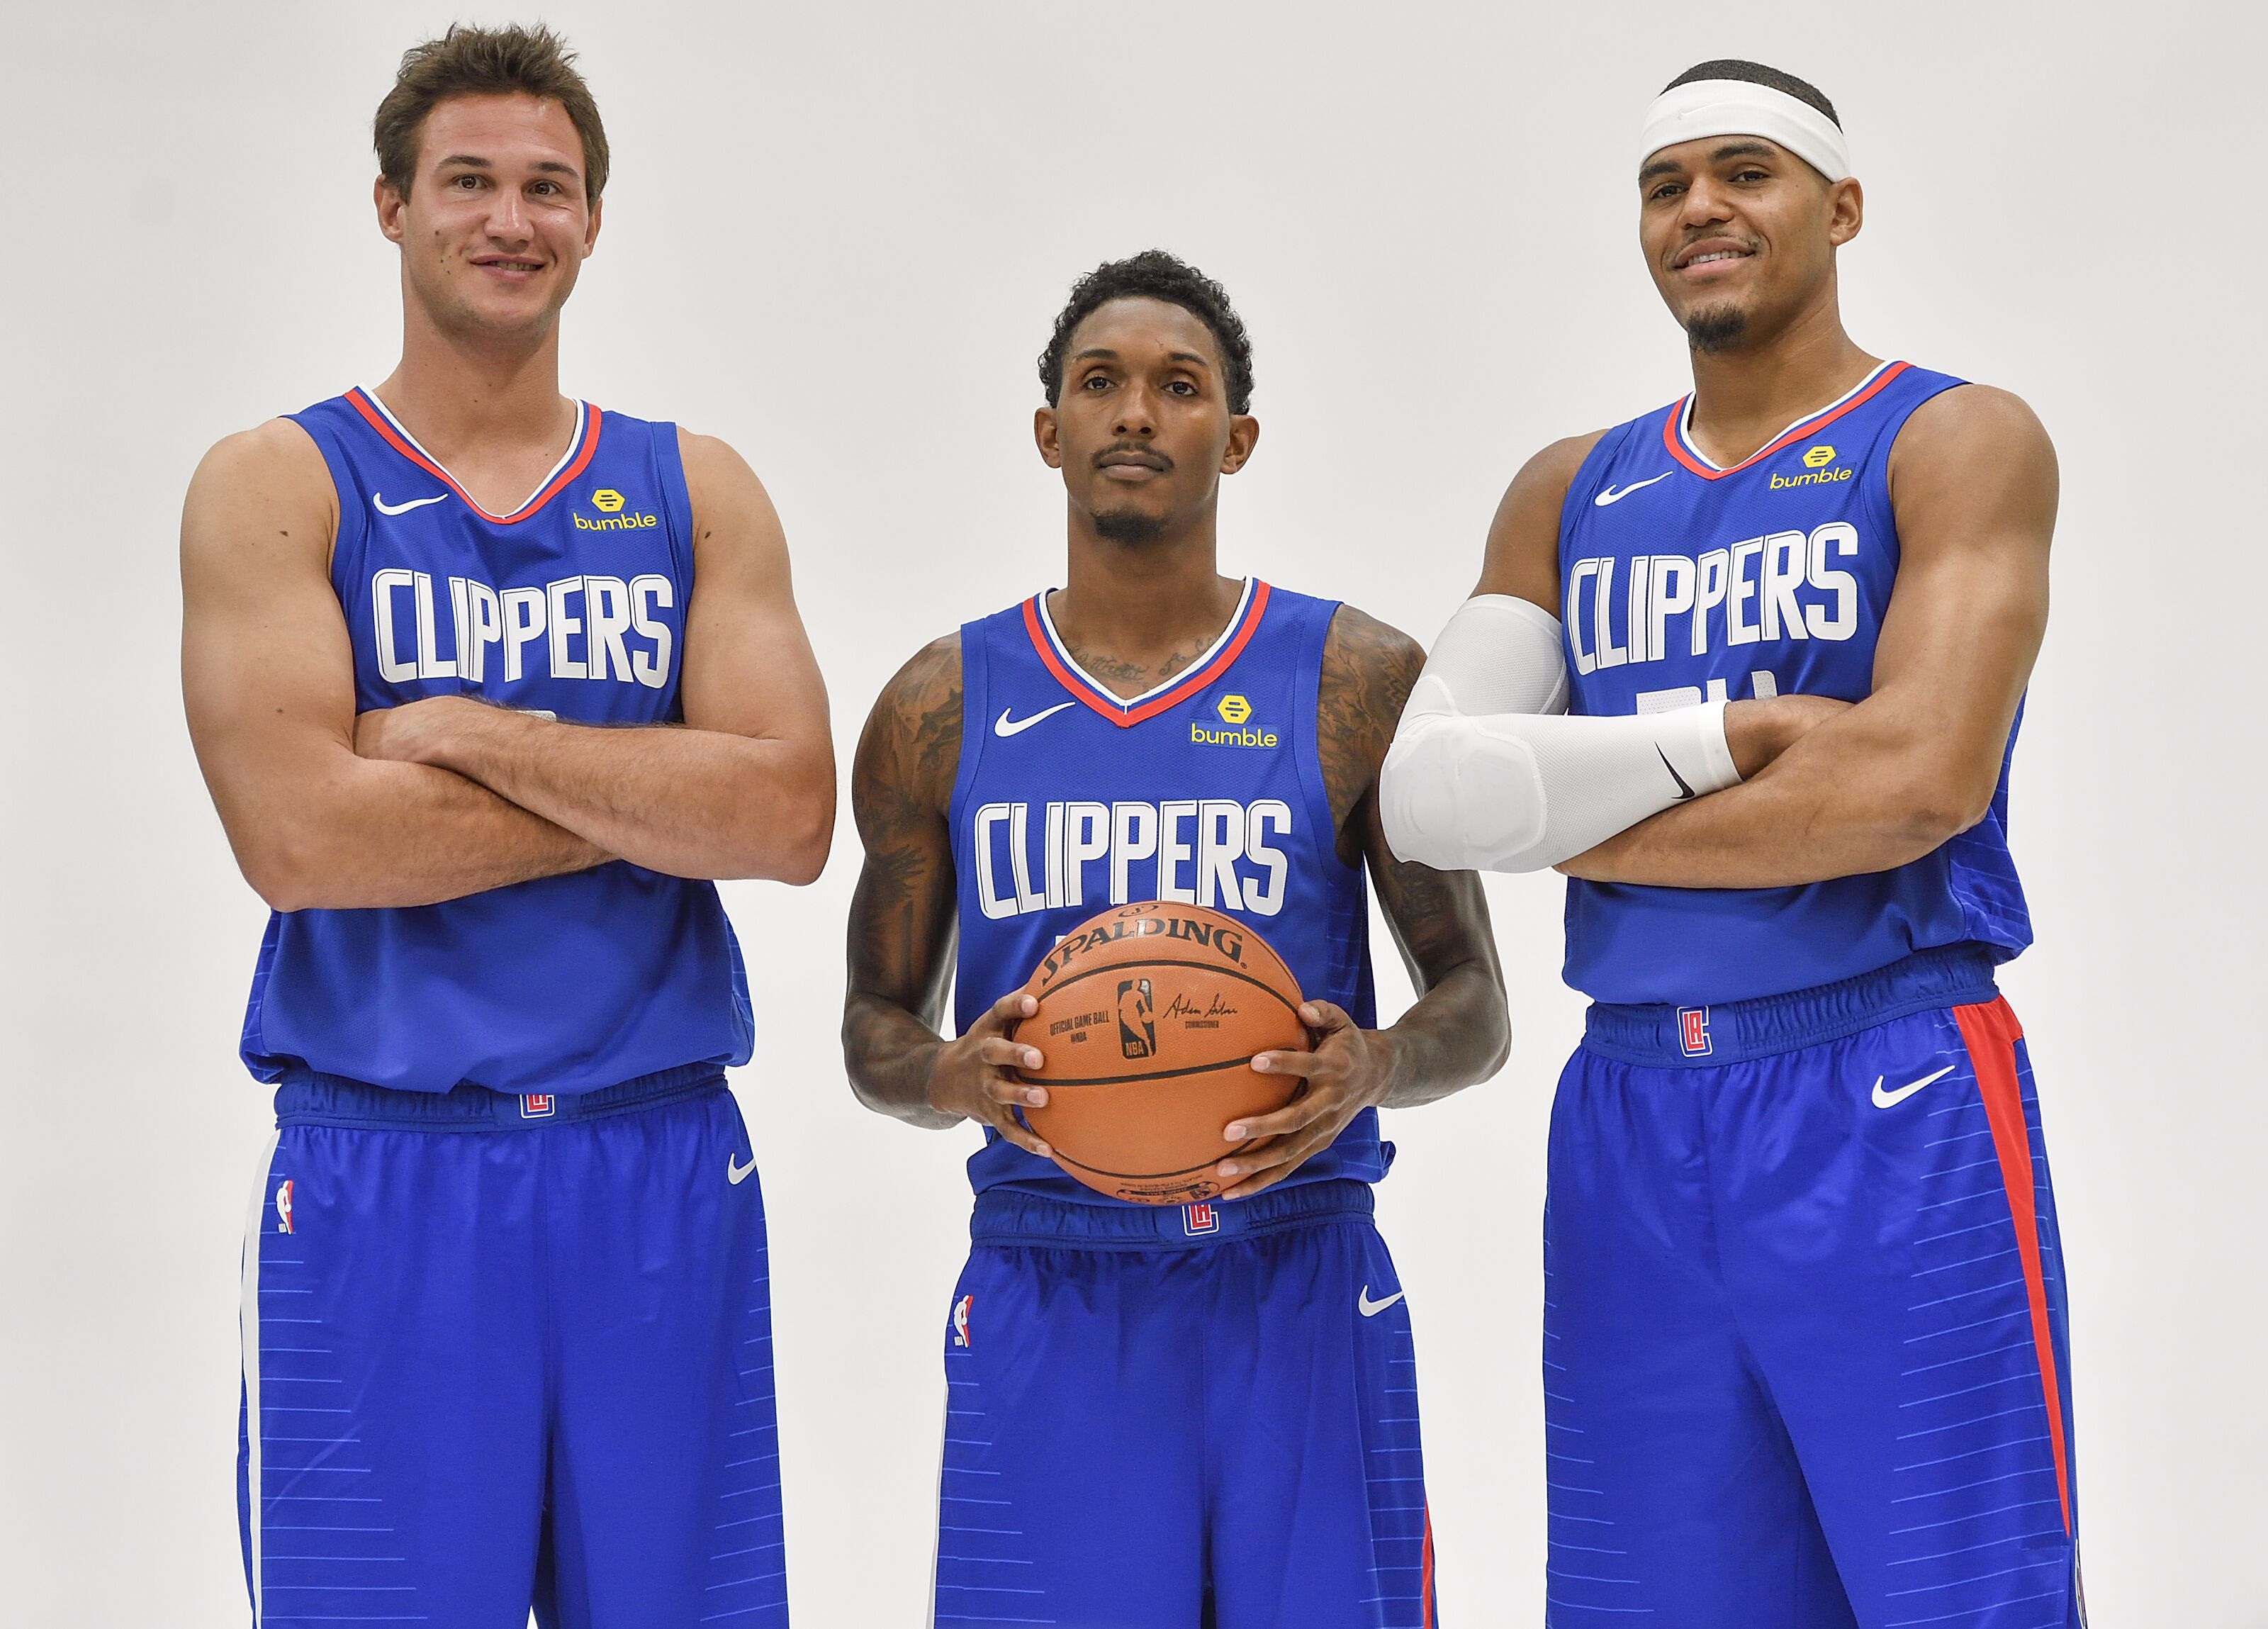 a357fb4699c Everything you need to know about each member of the LA Clippers before the  season begins